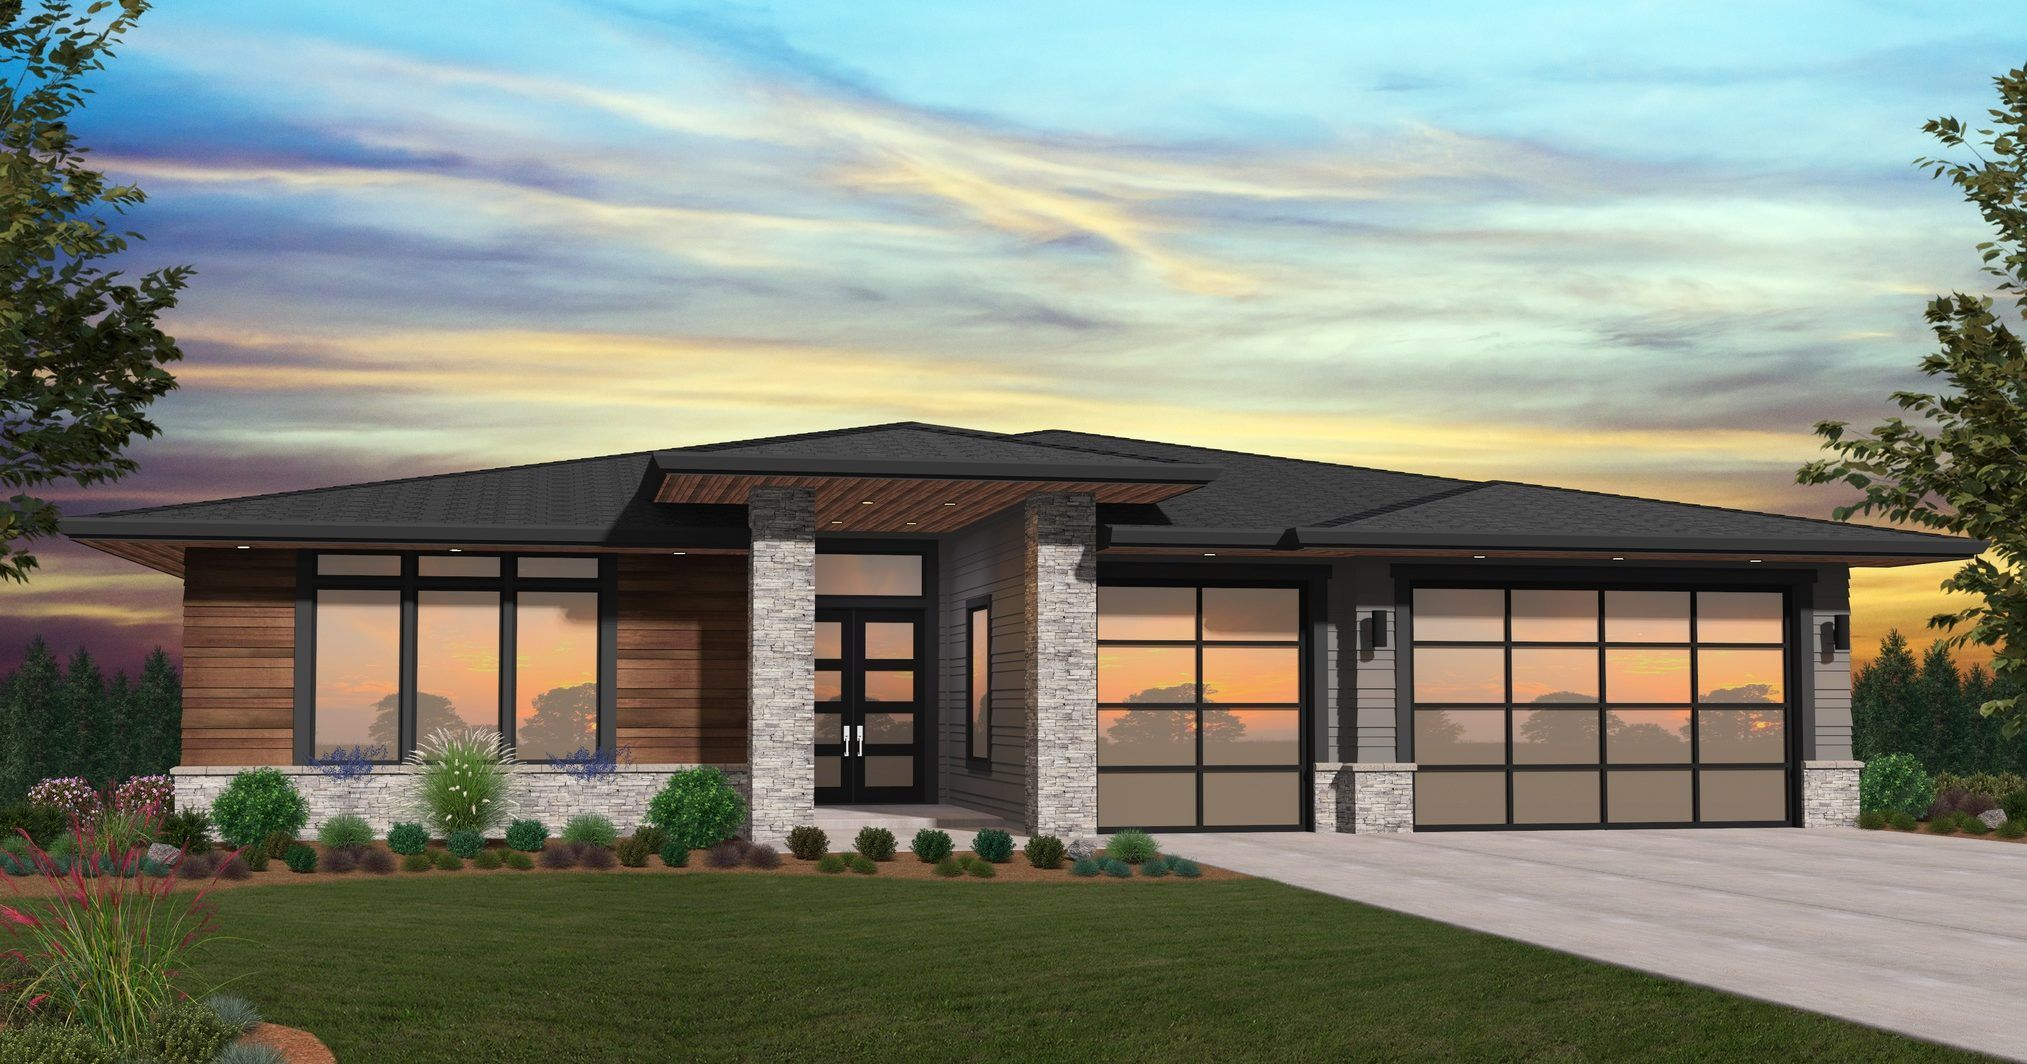 Sunsrise House Plan One Story Modern House Design With Garage Modern Prairie Home Prairie Style Houses Contemporary House Plans